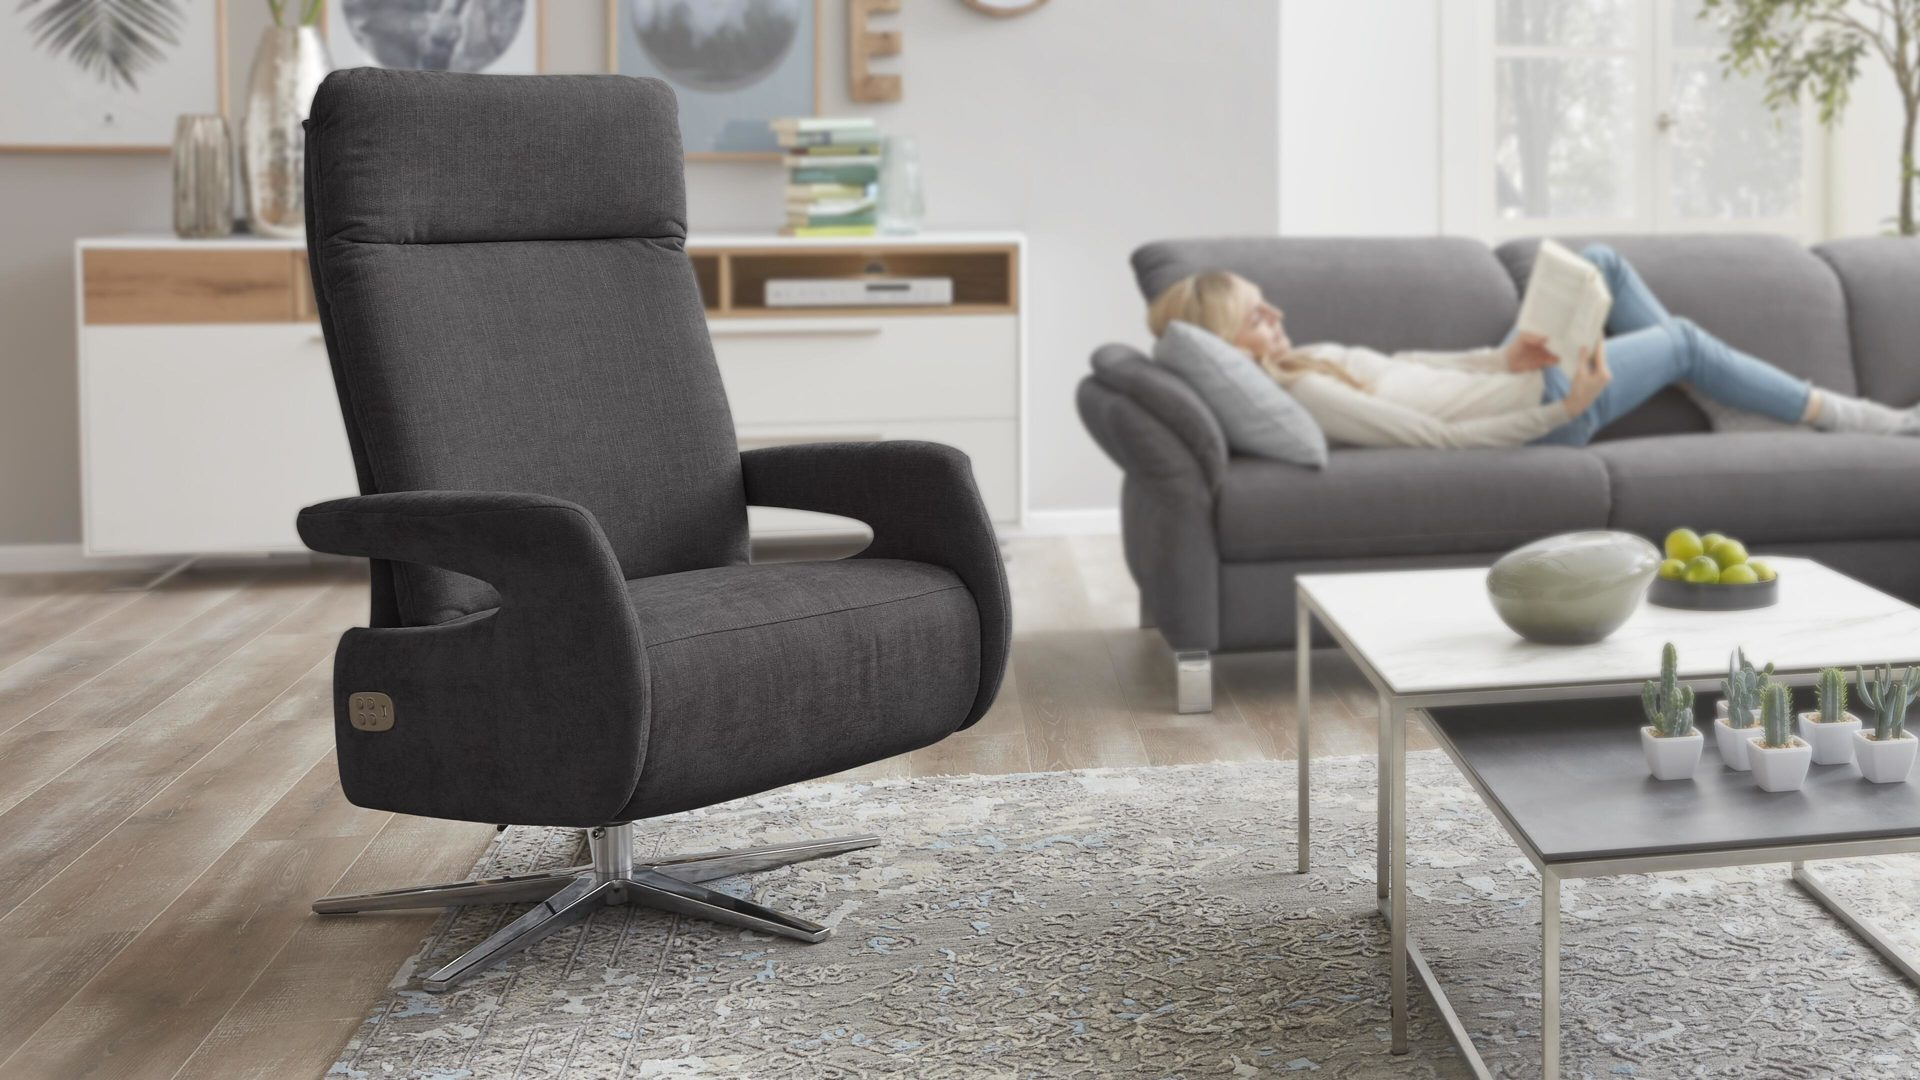 Relaxsessel 3c candy | il aus Stoff in Grau Interliving Sessel Serie 4510 – Relaxsessel dunkelgrauer Bezug Yelda grey & Sternfuß